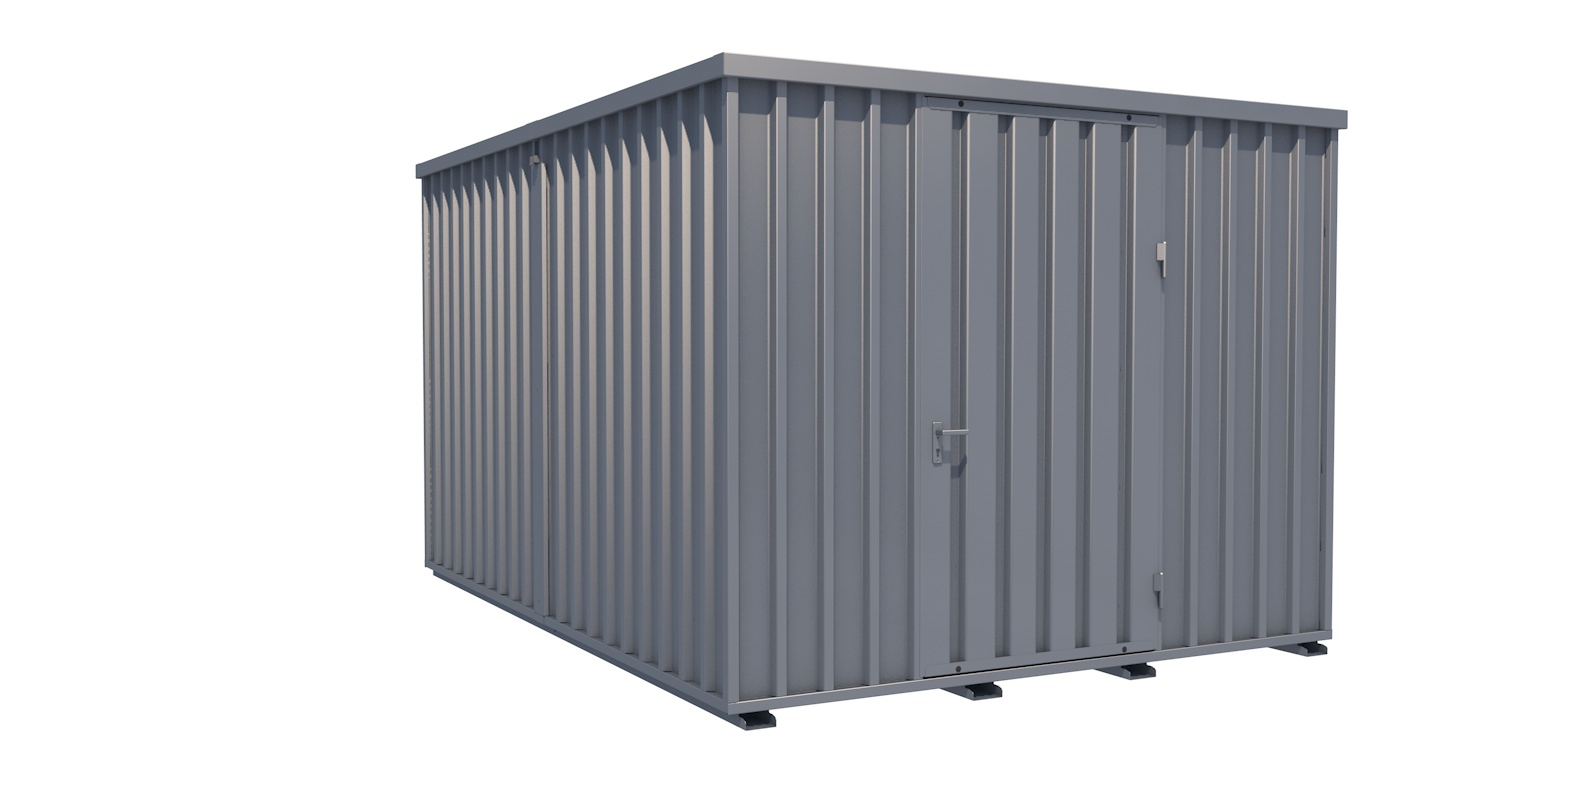 Container-Kombination Höhe 2400 mm